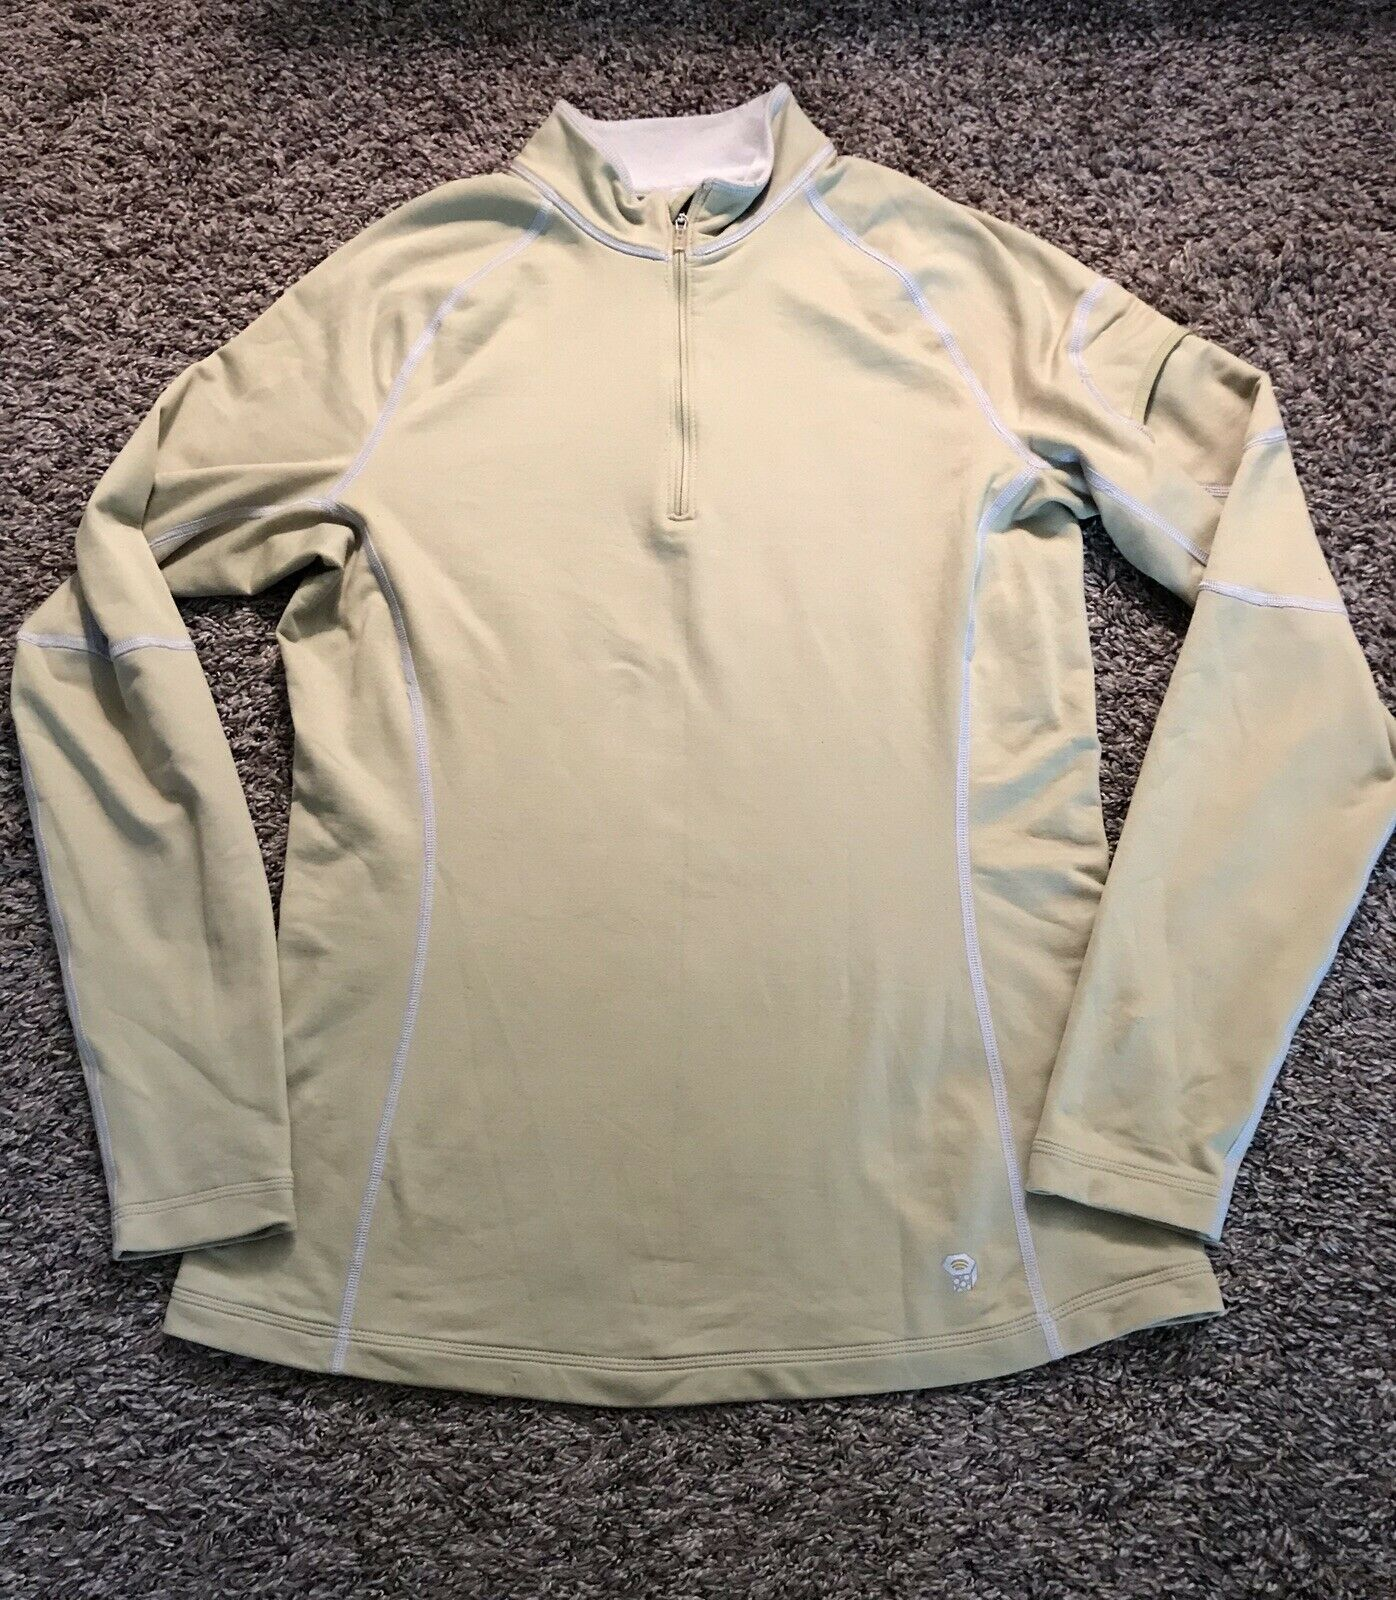 Mountain Hardwear 1/4 Zip Stretchy Pullover Size L